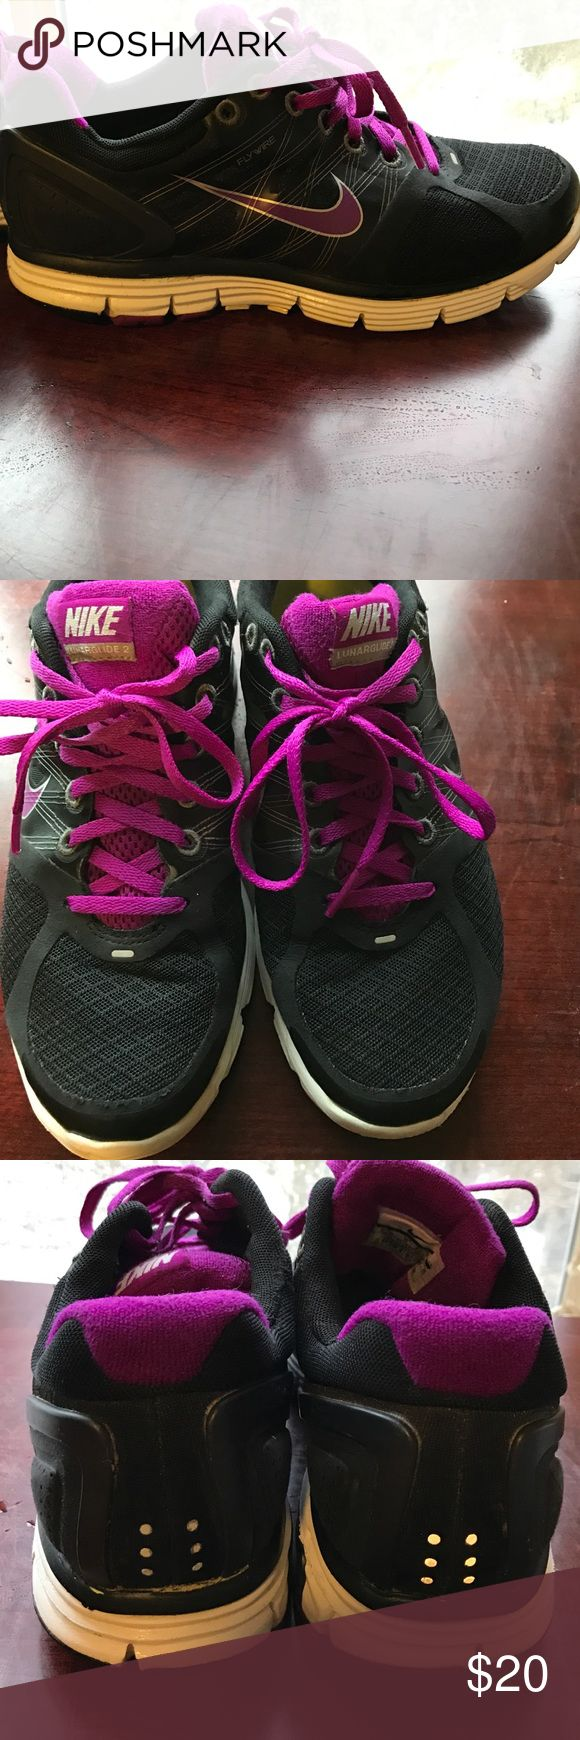 Women's Nike Lunarglide 2 shoes sizes 7.5 Black and purple women's Nike Lunarglide 2 shoes. Very comfortable shoes. In great condition Nike Shoes Athletic Shoes